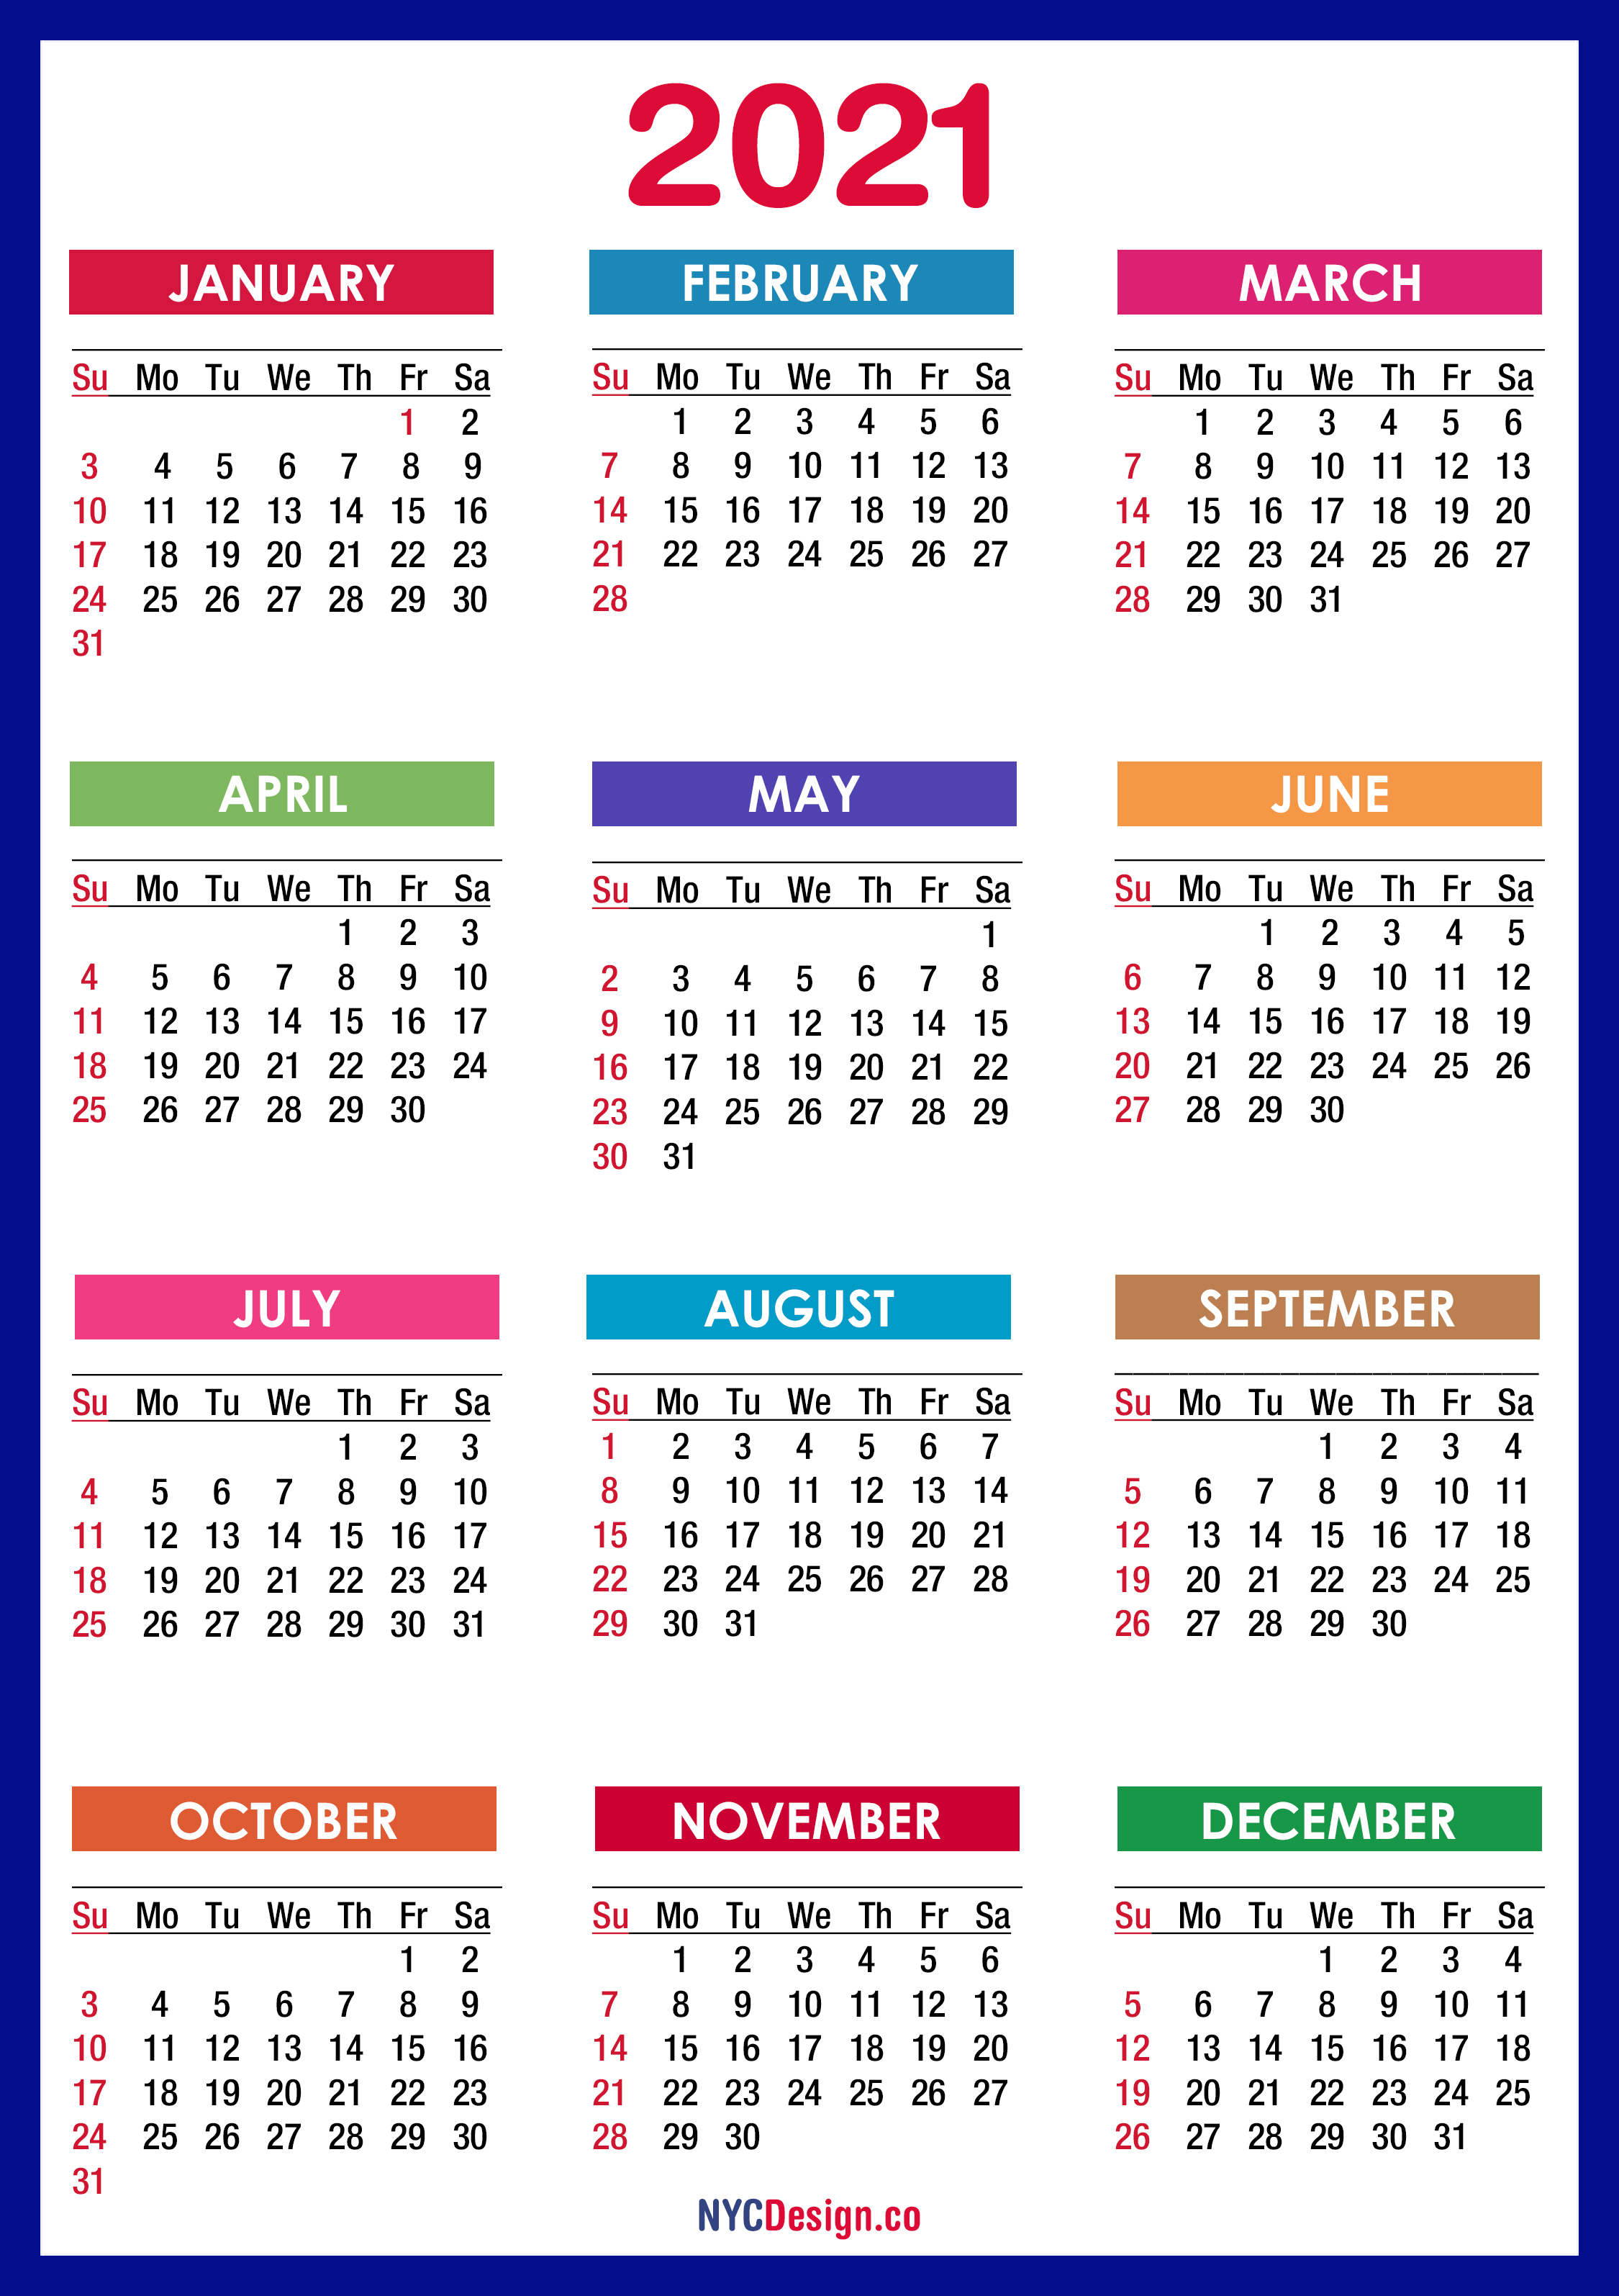 Download 2021 Calendar Pdf 2021 Calendar Printable Free, PDF, Colorful, Blue, Green – Sunday